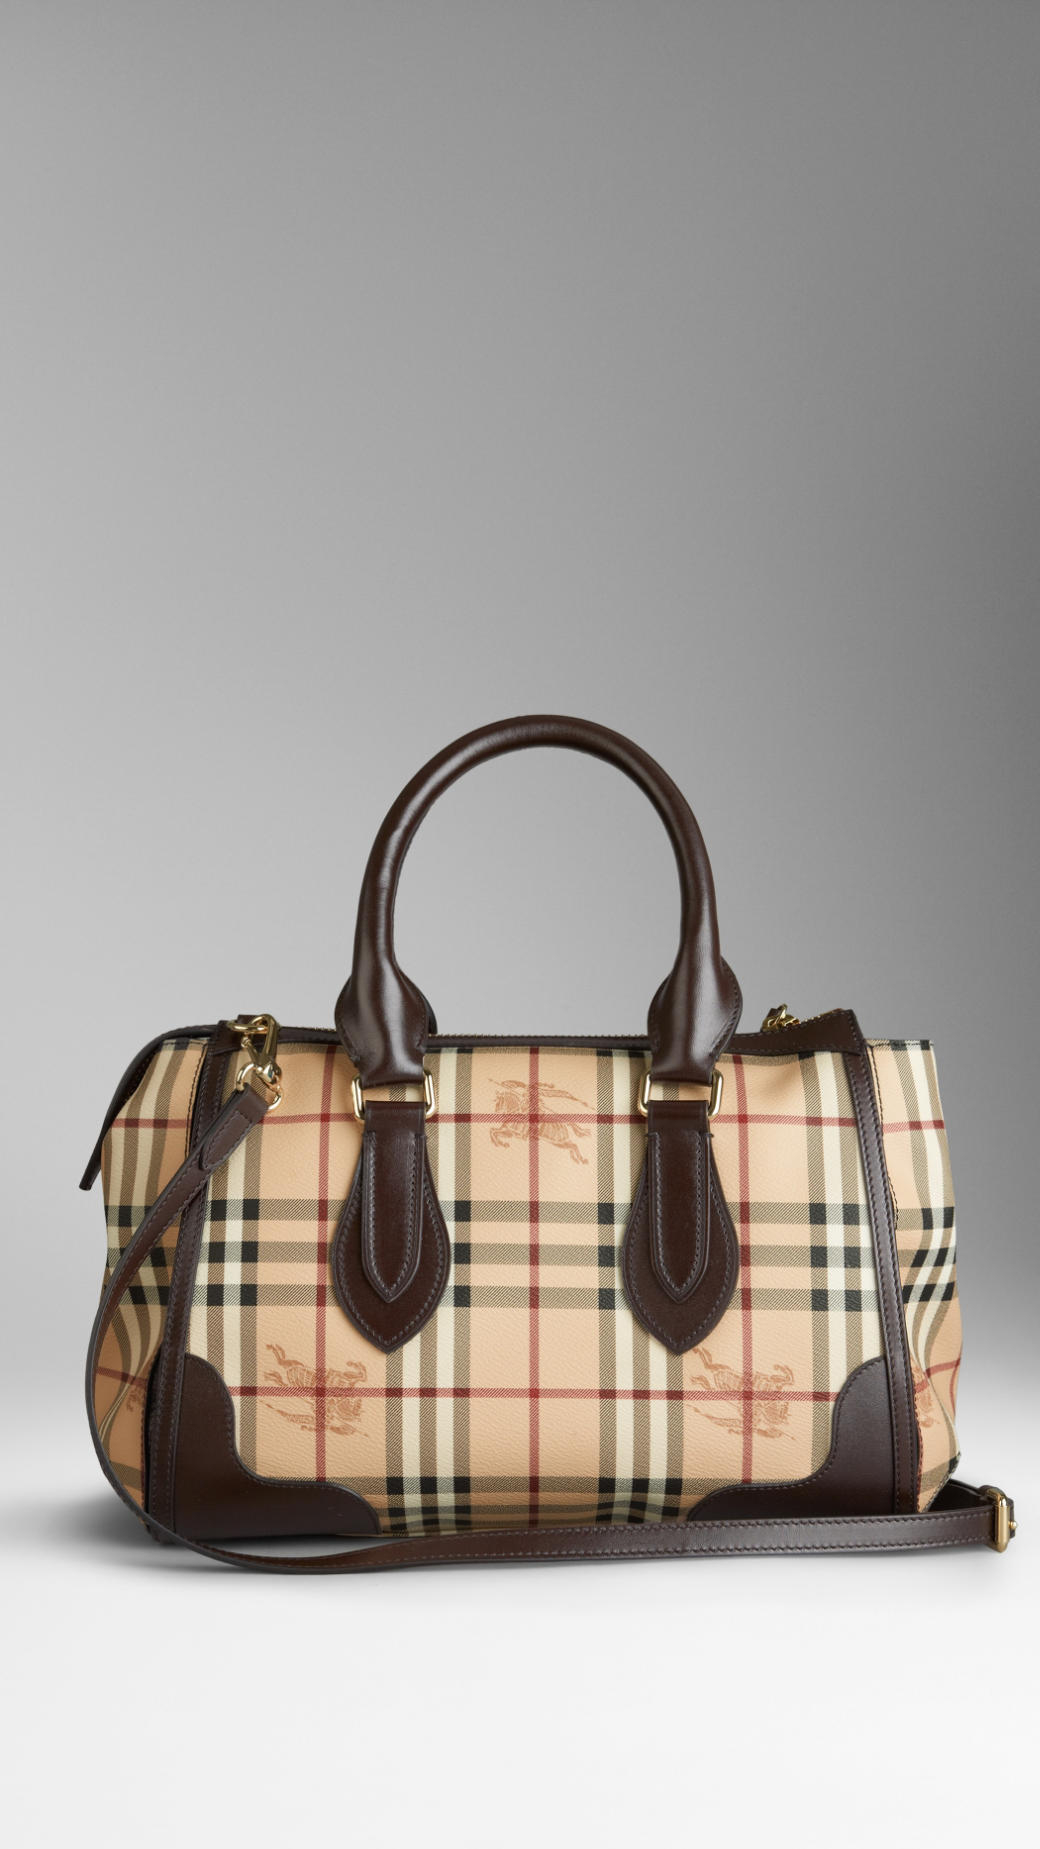 ... differently 7cdc2 a6a3d Lyst - Burberry Small Haymarket Check Tote Bag  in Brown ... 73a0ca28e5